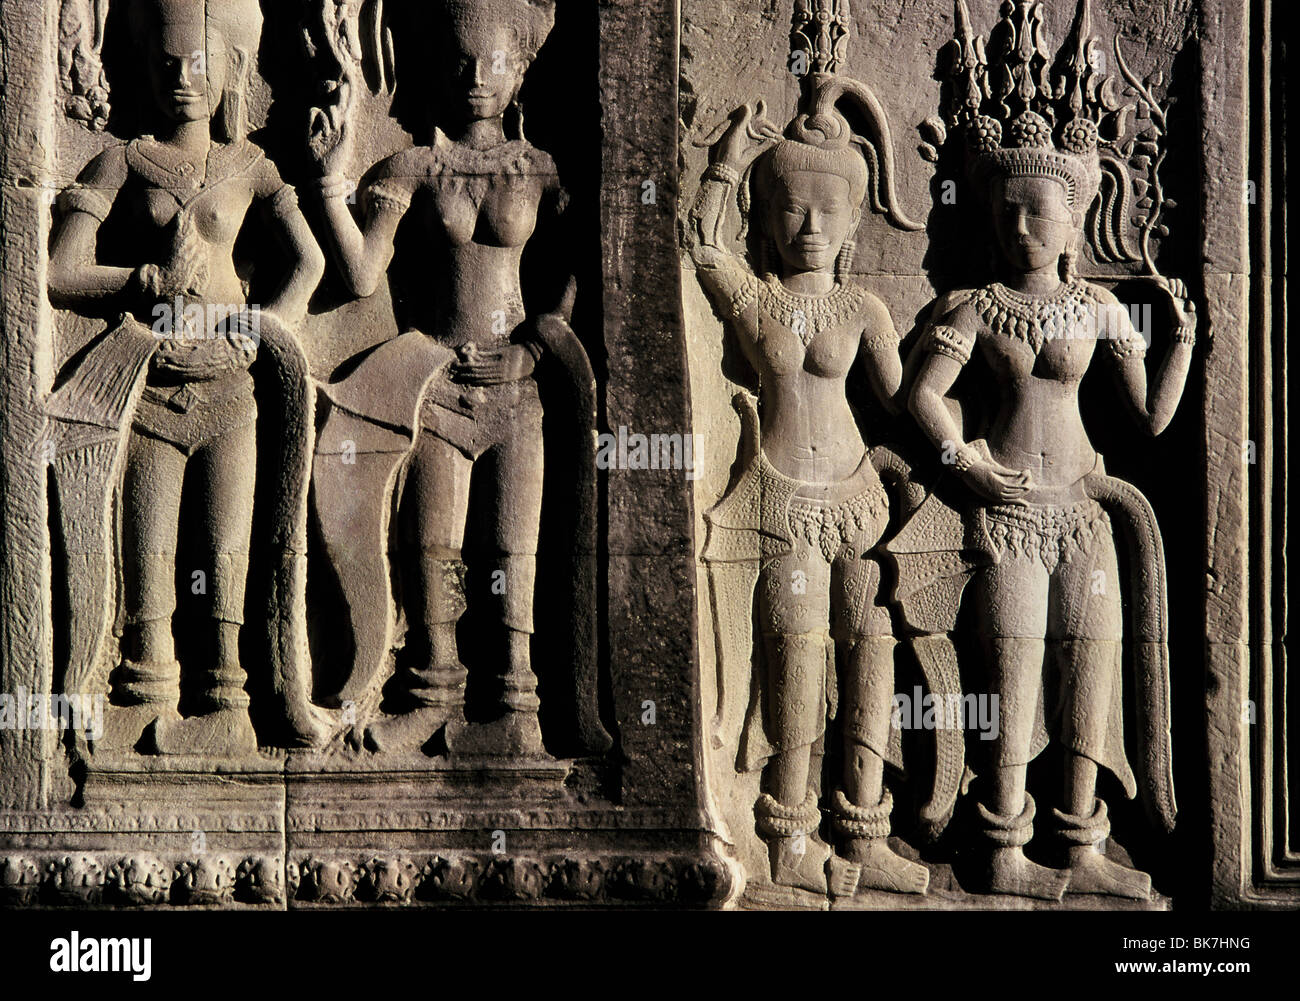 Detail of early 12th century reliefs with later additions, Angkor Wat, Angkor, UNESCO World Heritage Site, Cambodia - Stock Image